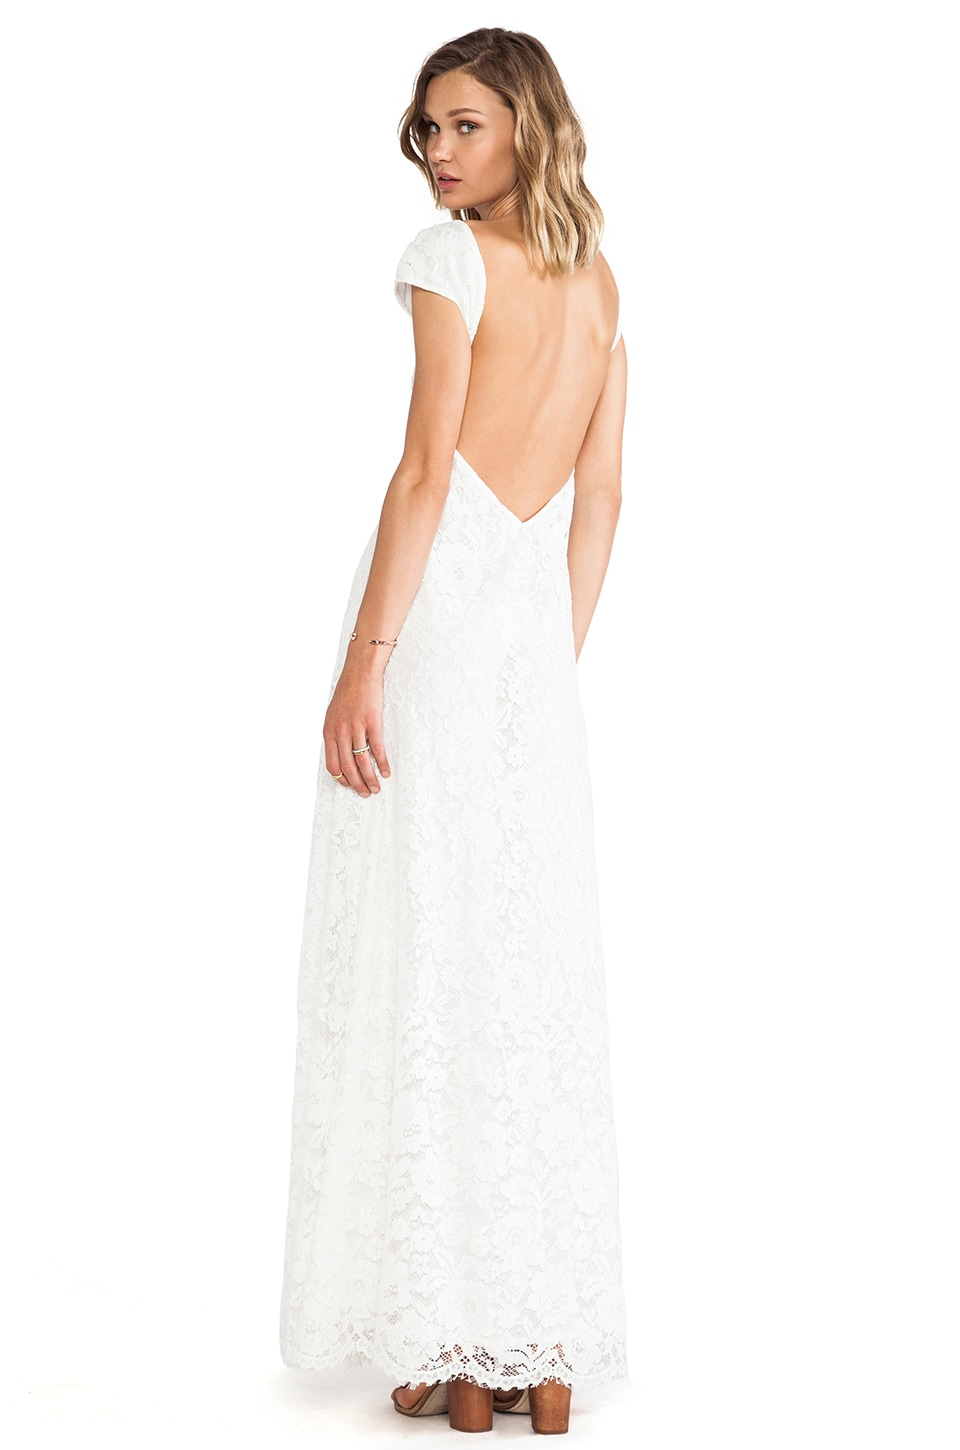 Lovers + Friends Vanity Fair Dress in White Lace